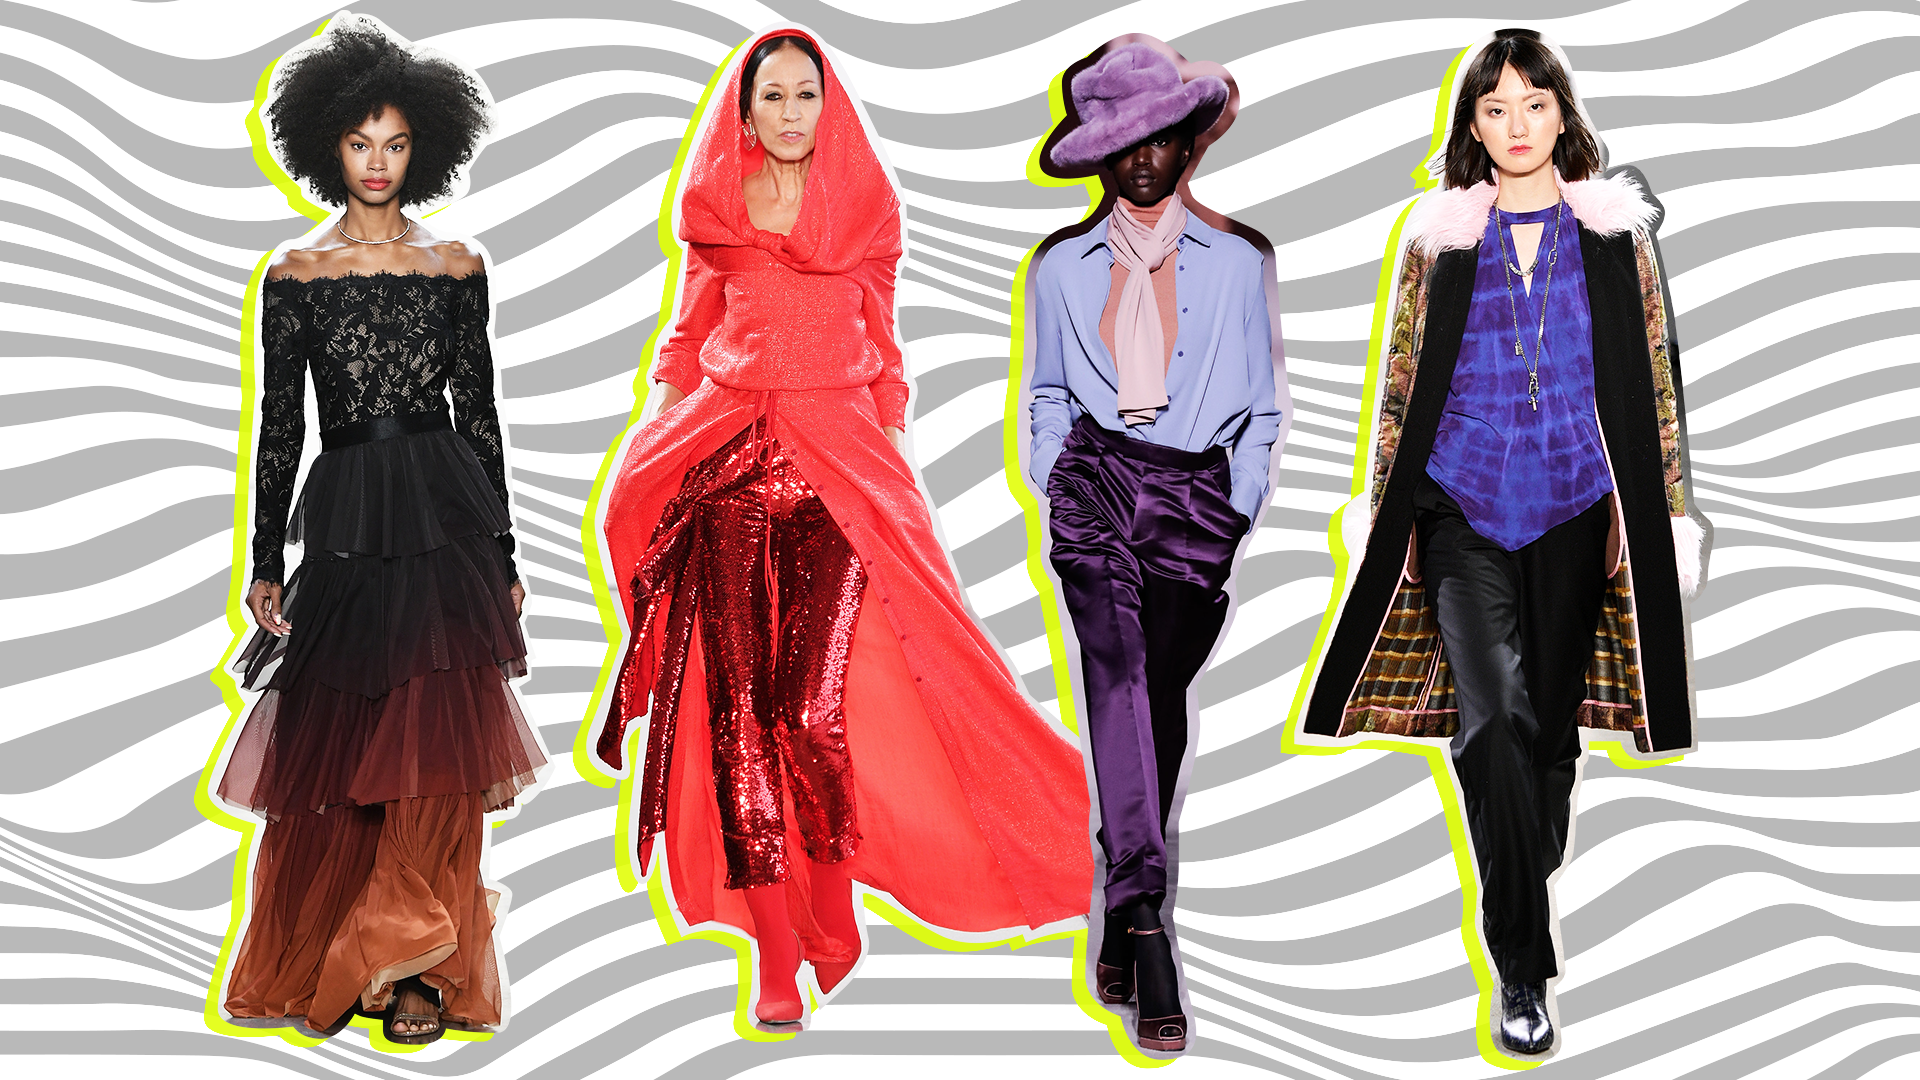 The NYFW 2019 Runways Have Been Loaded with Stunning, Statement-Making Style